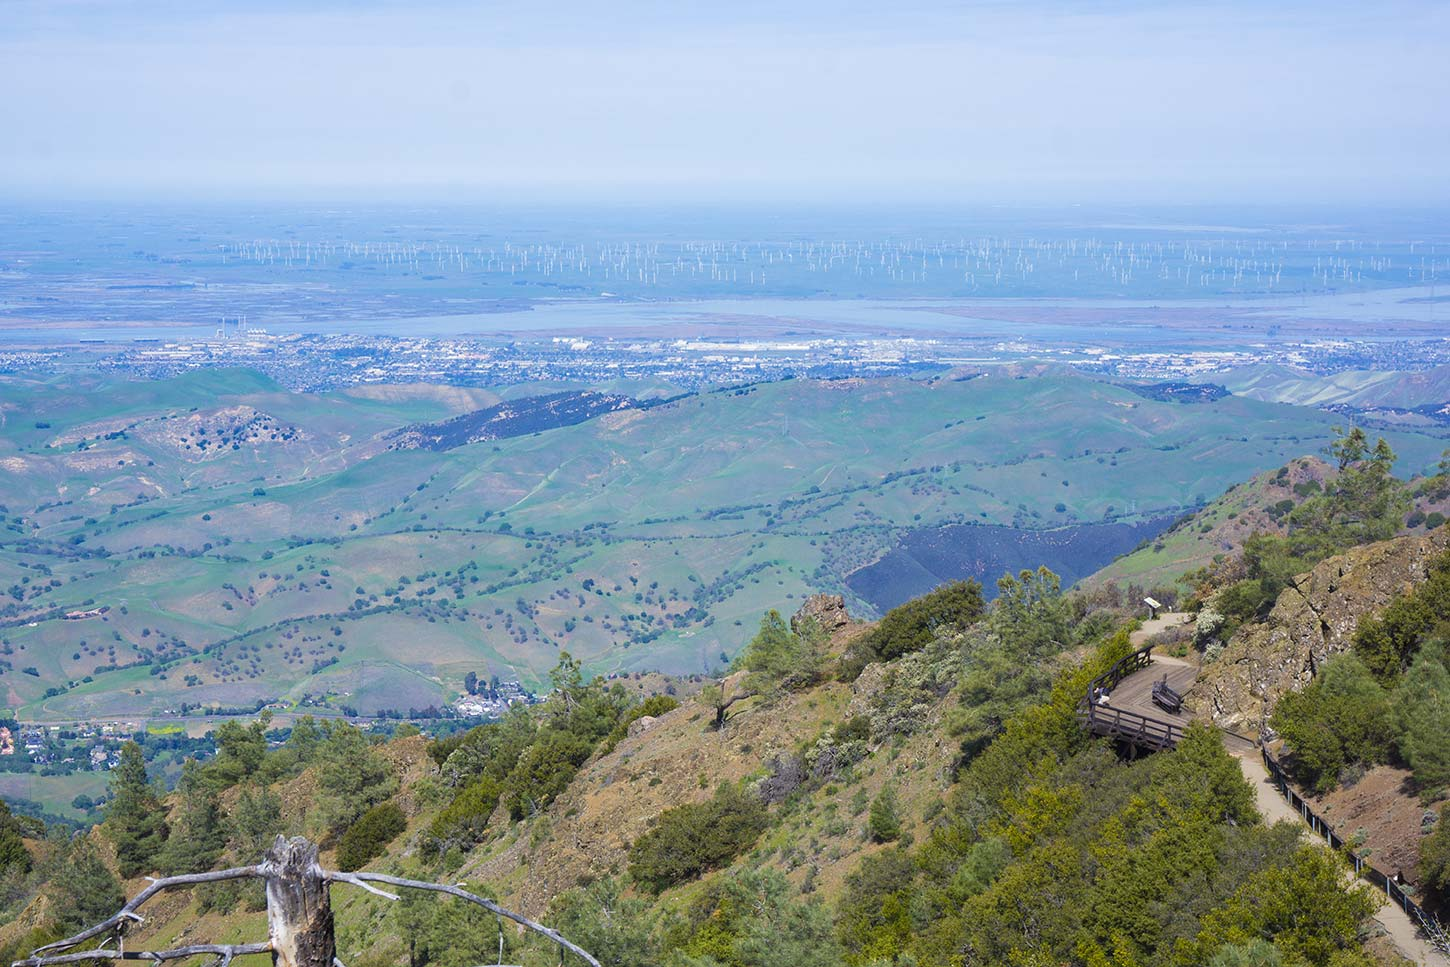 Diablo foothills is an imposing gateway to the beautiful parklands of mt diablo state park and walnut creek open space. Mount Diablo State Park